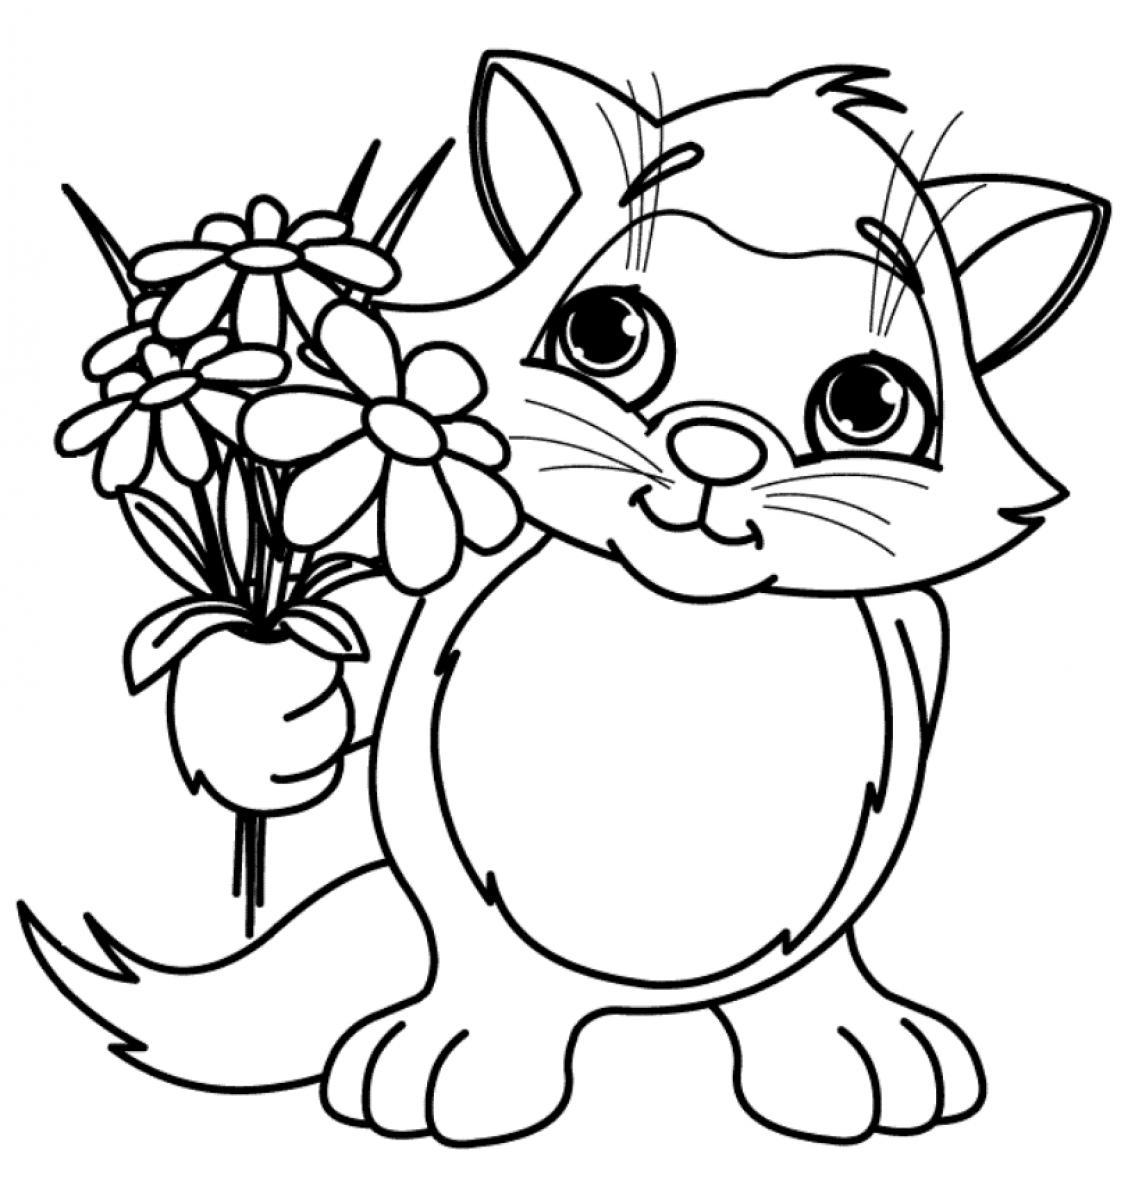 coloring page of a flower flower coloring pages of flower a page coloring